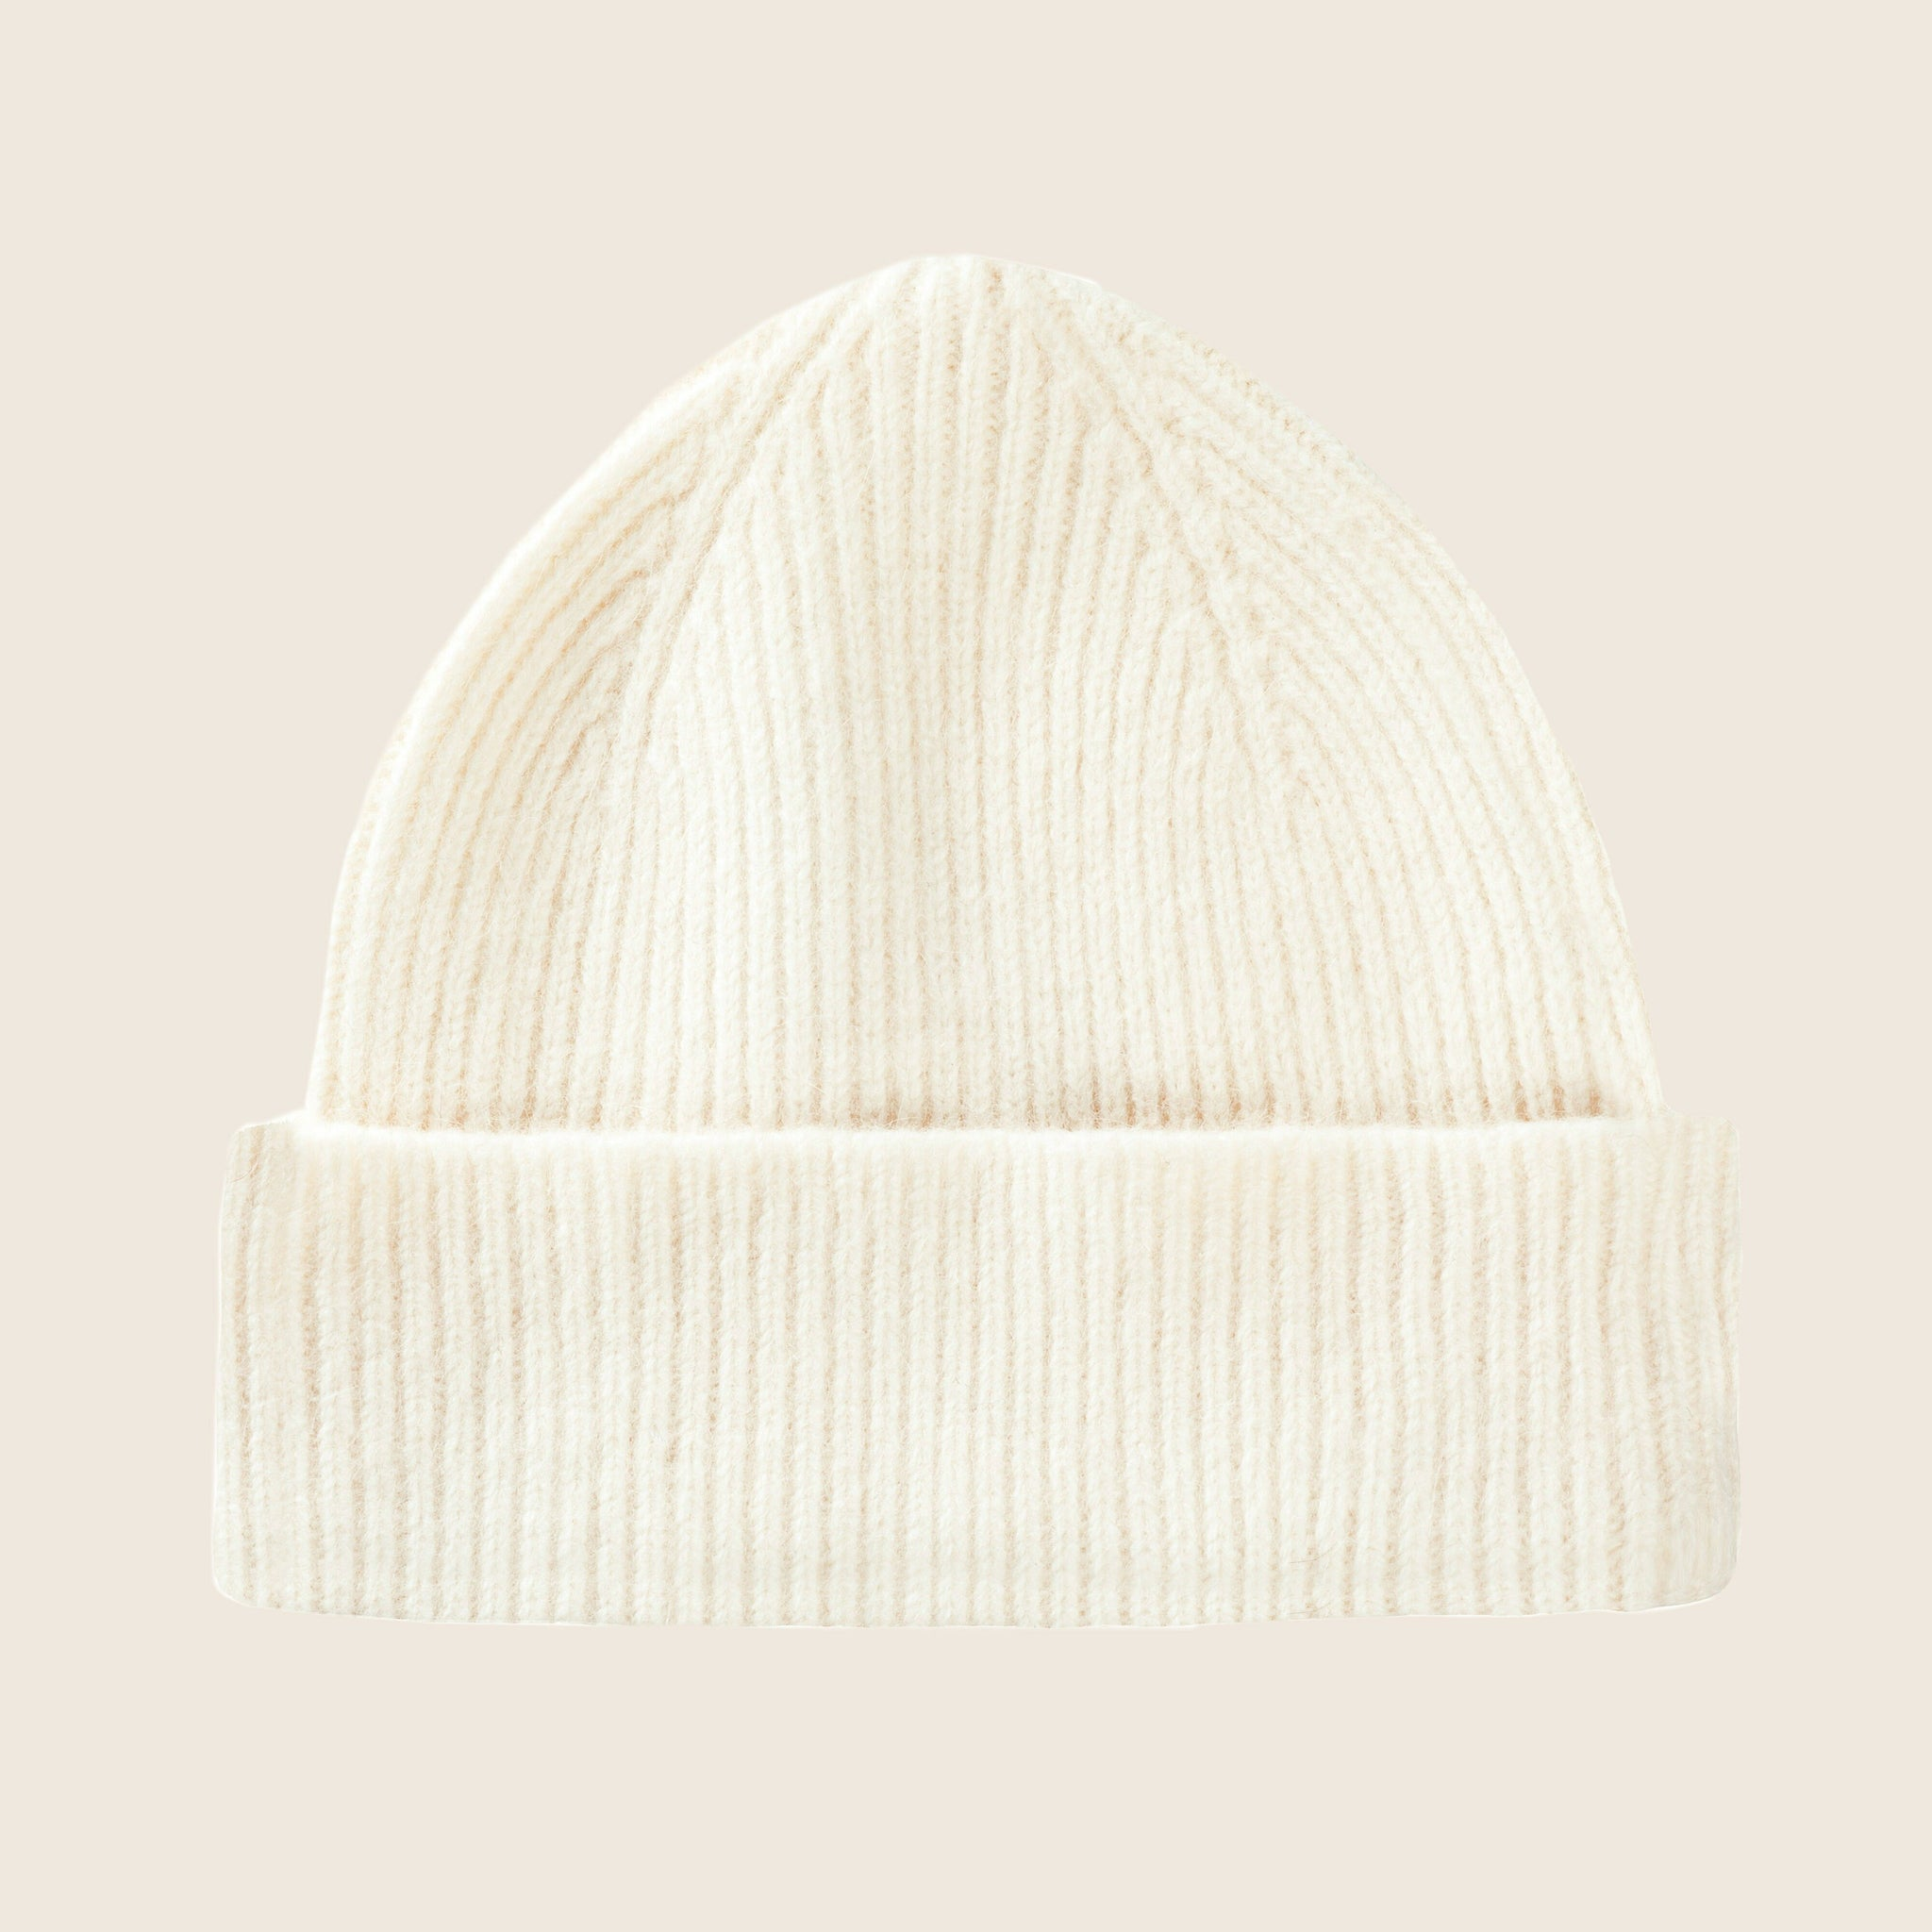 BEANIE IN SNOW BY LE BONNET